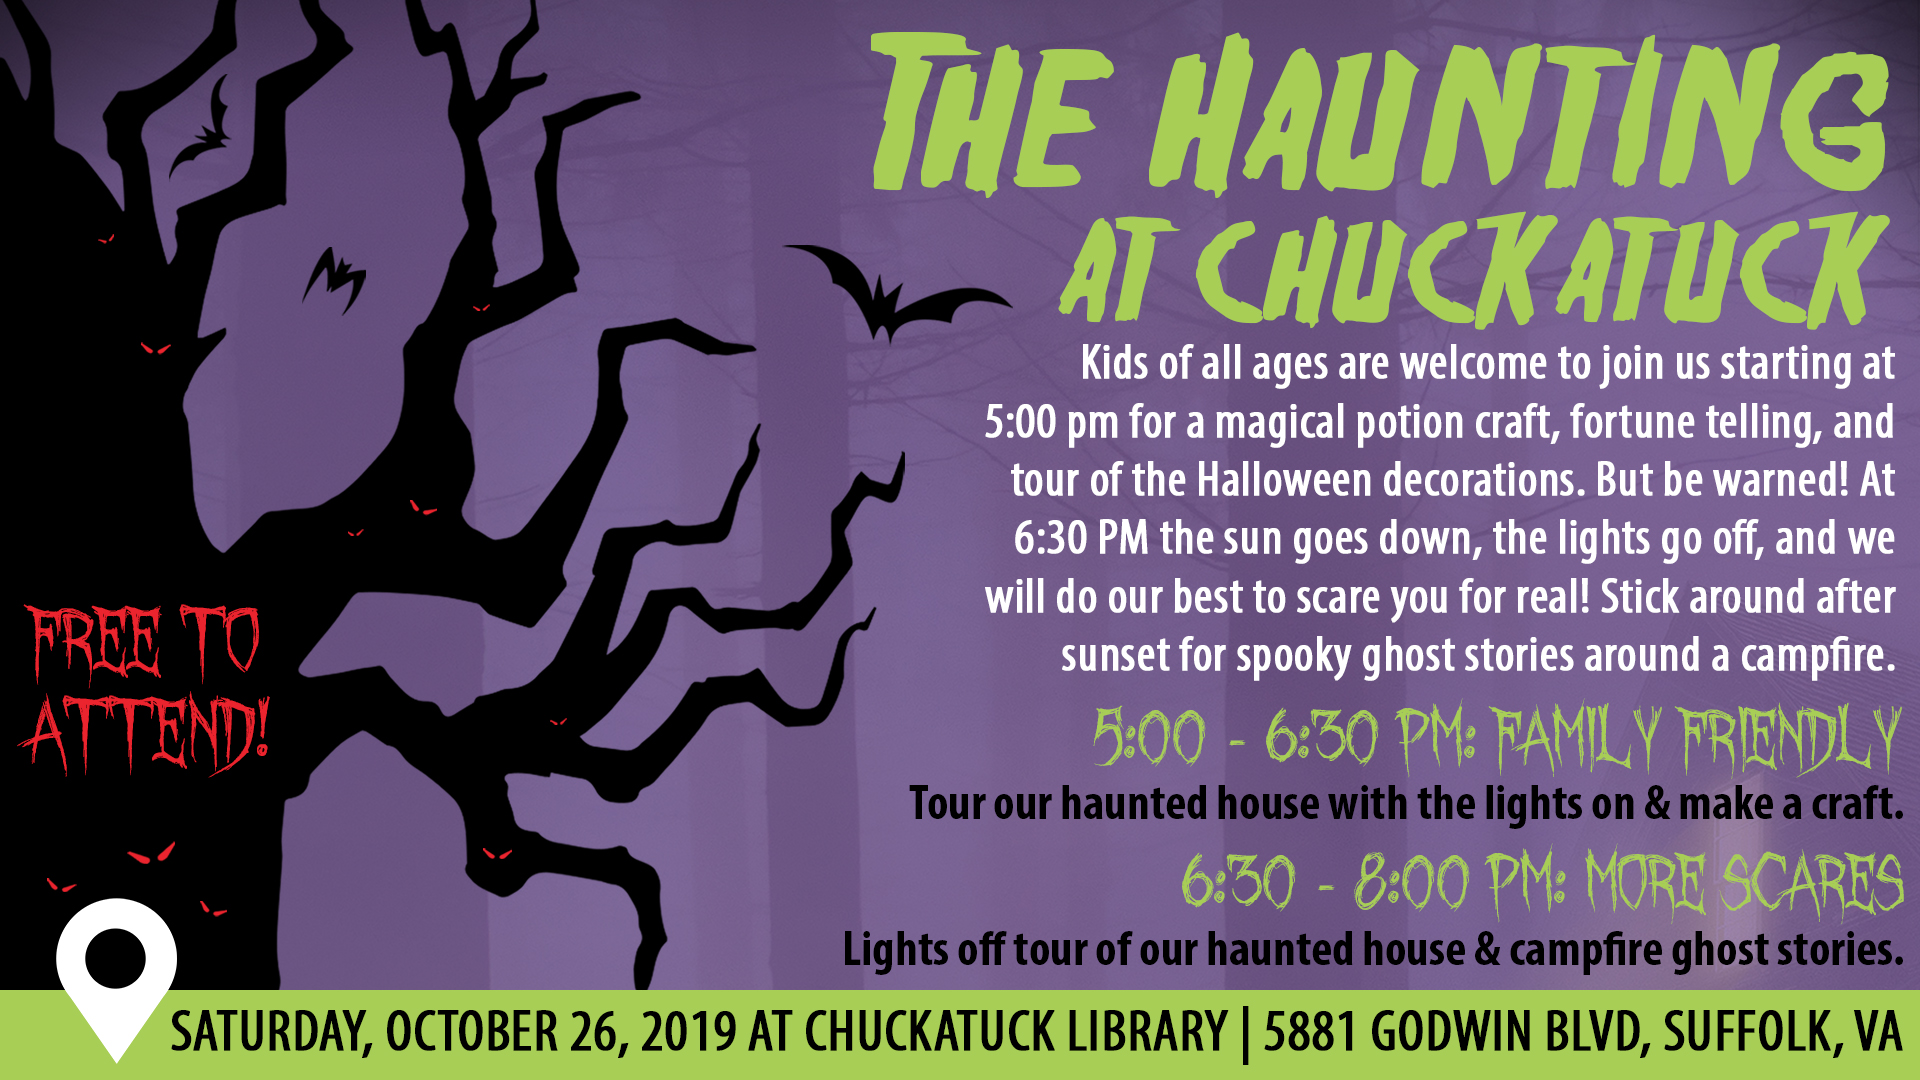 The Haunting at Chuckatuck